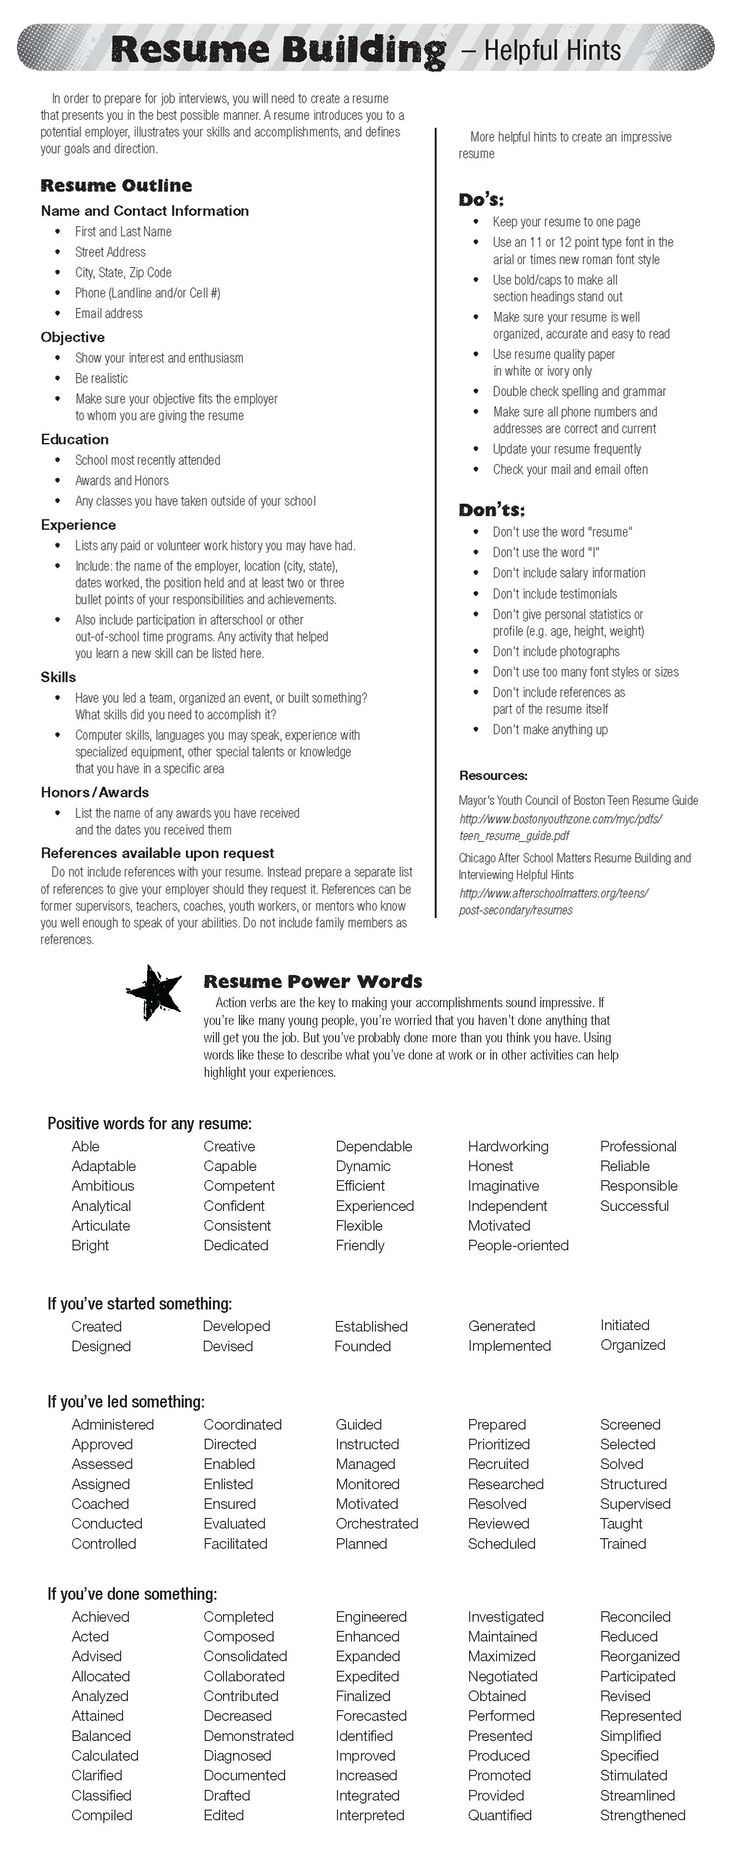 Opposenewapstandardsus  Picturesque  Ideas About Resume On Pinterest  Cv Format Resume Cv And  With Hot  Ideas About Resume On Pinterest  Cv Format Resume Cv And Resume Templates With Breathtaking Experienced Professional Resume Also Gpa On A Resume In Addition Police Sergeant Resume And Skills Section Resume Example As Well As Resume Database Software Additionally Cover For Resume From Pinterestcom With Opposenewapstandardsus  Hot  Ideas About Resume On Pinterest  Cv Format Resume Cv And  With Breathtaking  Ideas About Resume On Pinterest  Cv Format Resume Cv And Resume Templates And Picturesque Experienced Professional Resume Also Gpa On A Resume In Addition Police Sergeant Resume From Pinterestcom